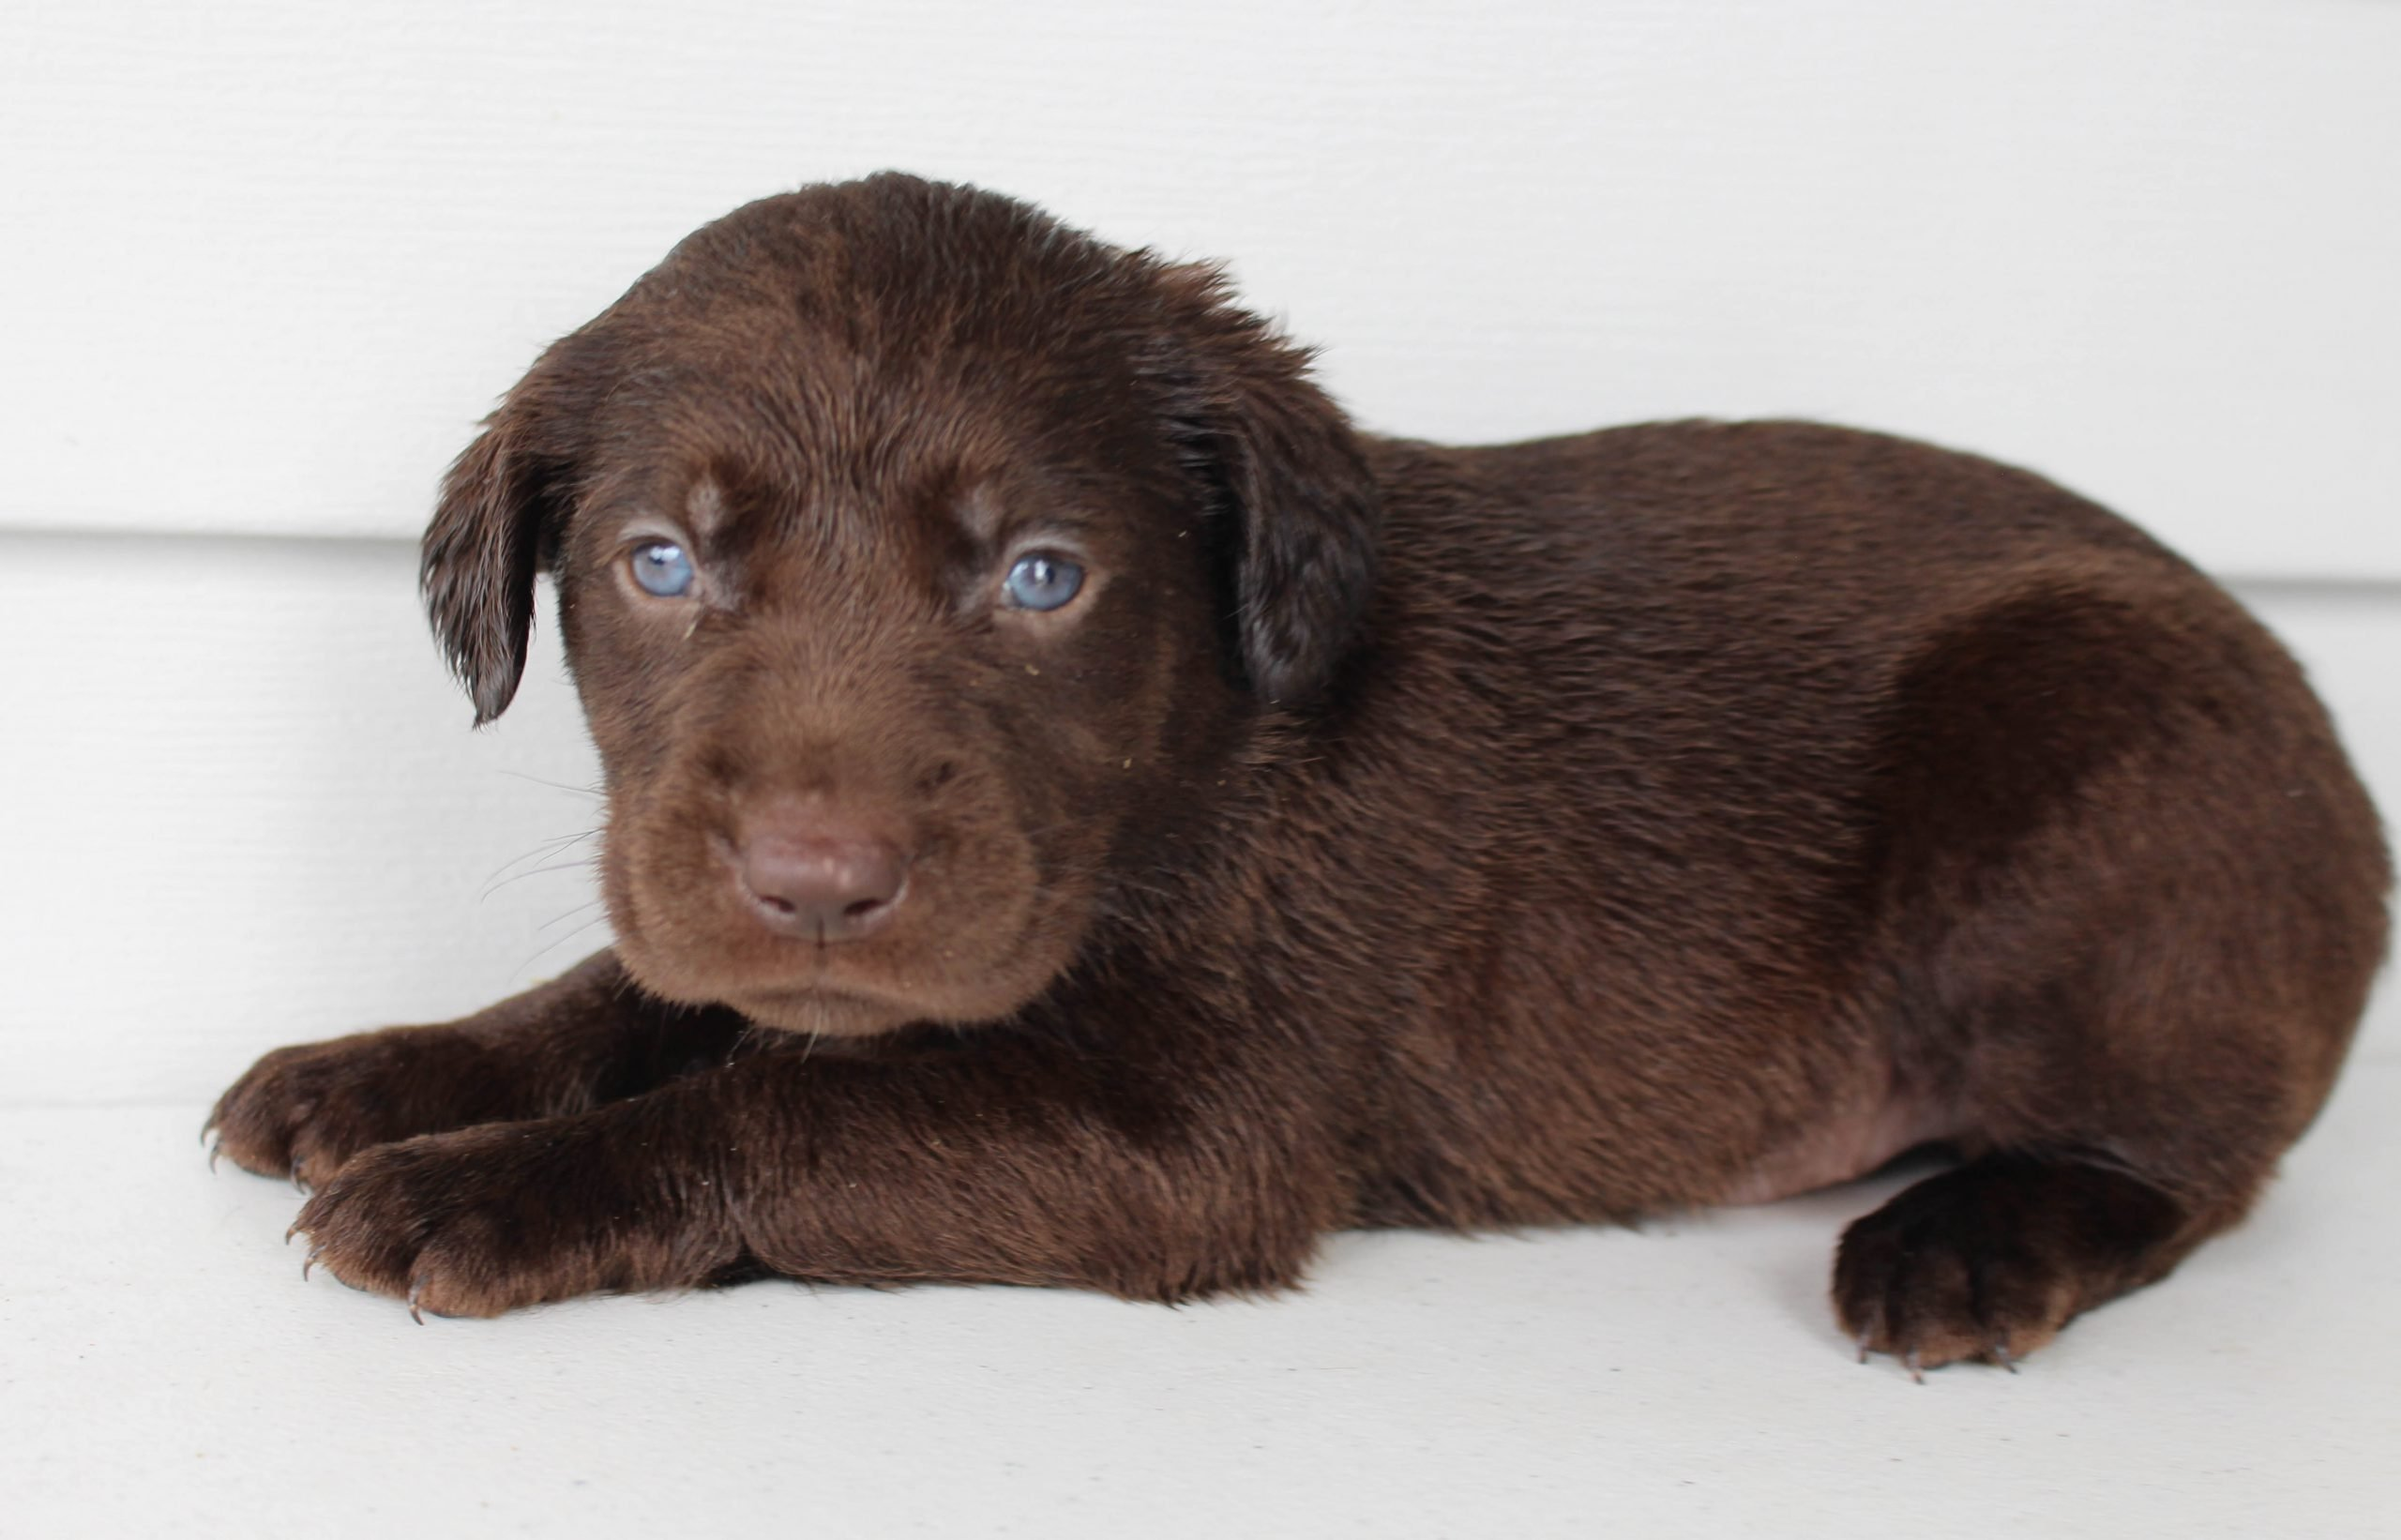 Teddy - Lab mix male pupper for sale at Grabill, Indiana